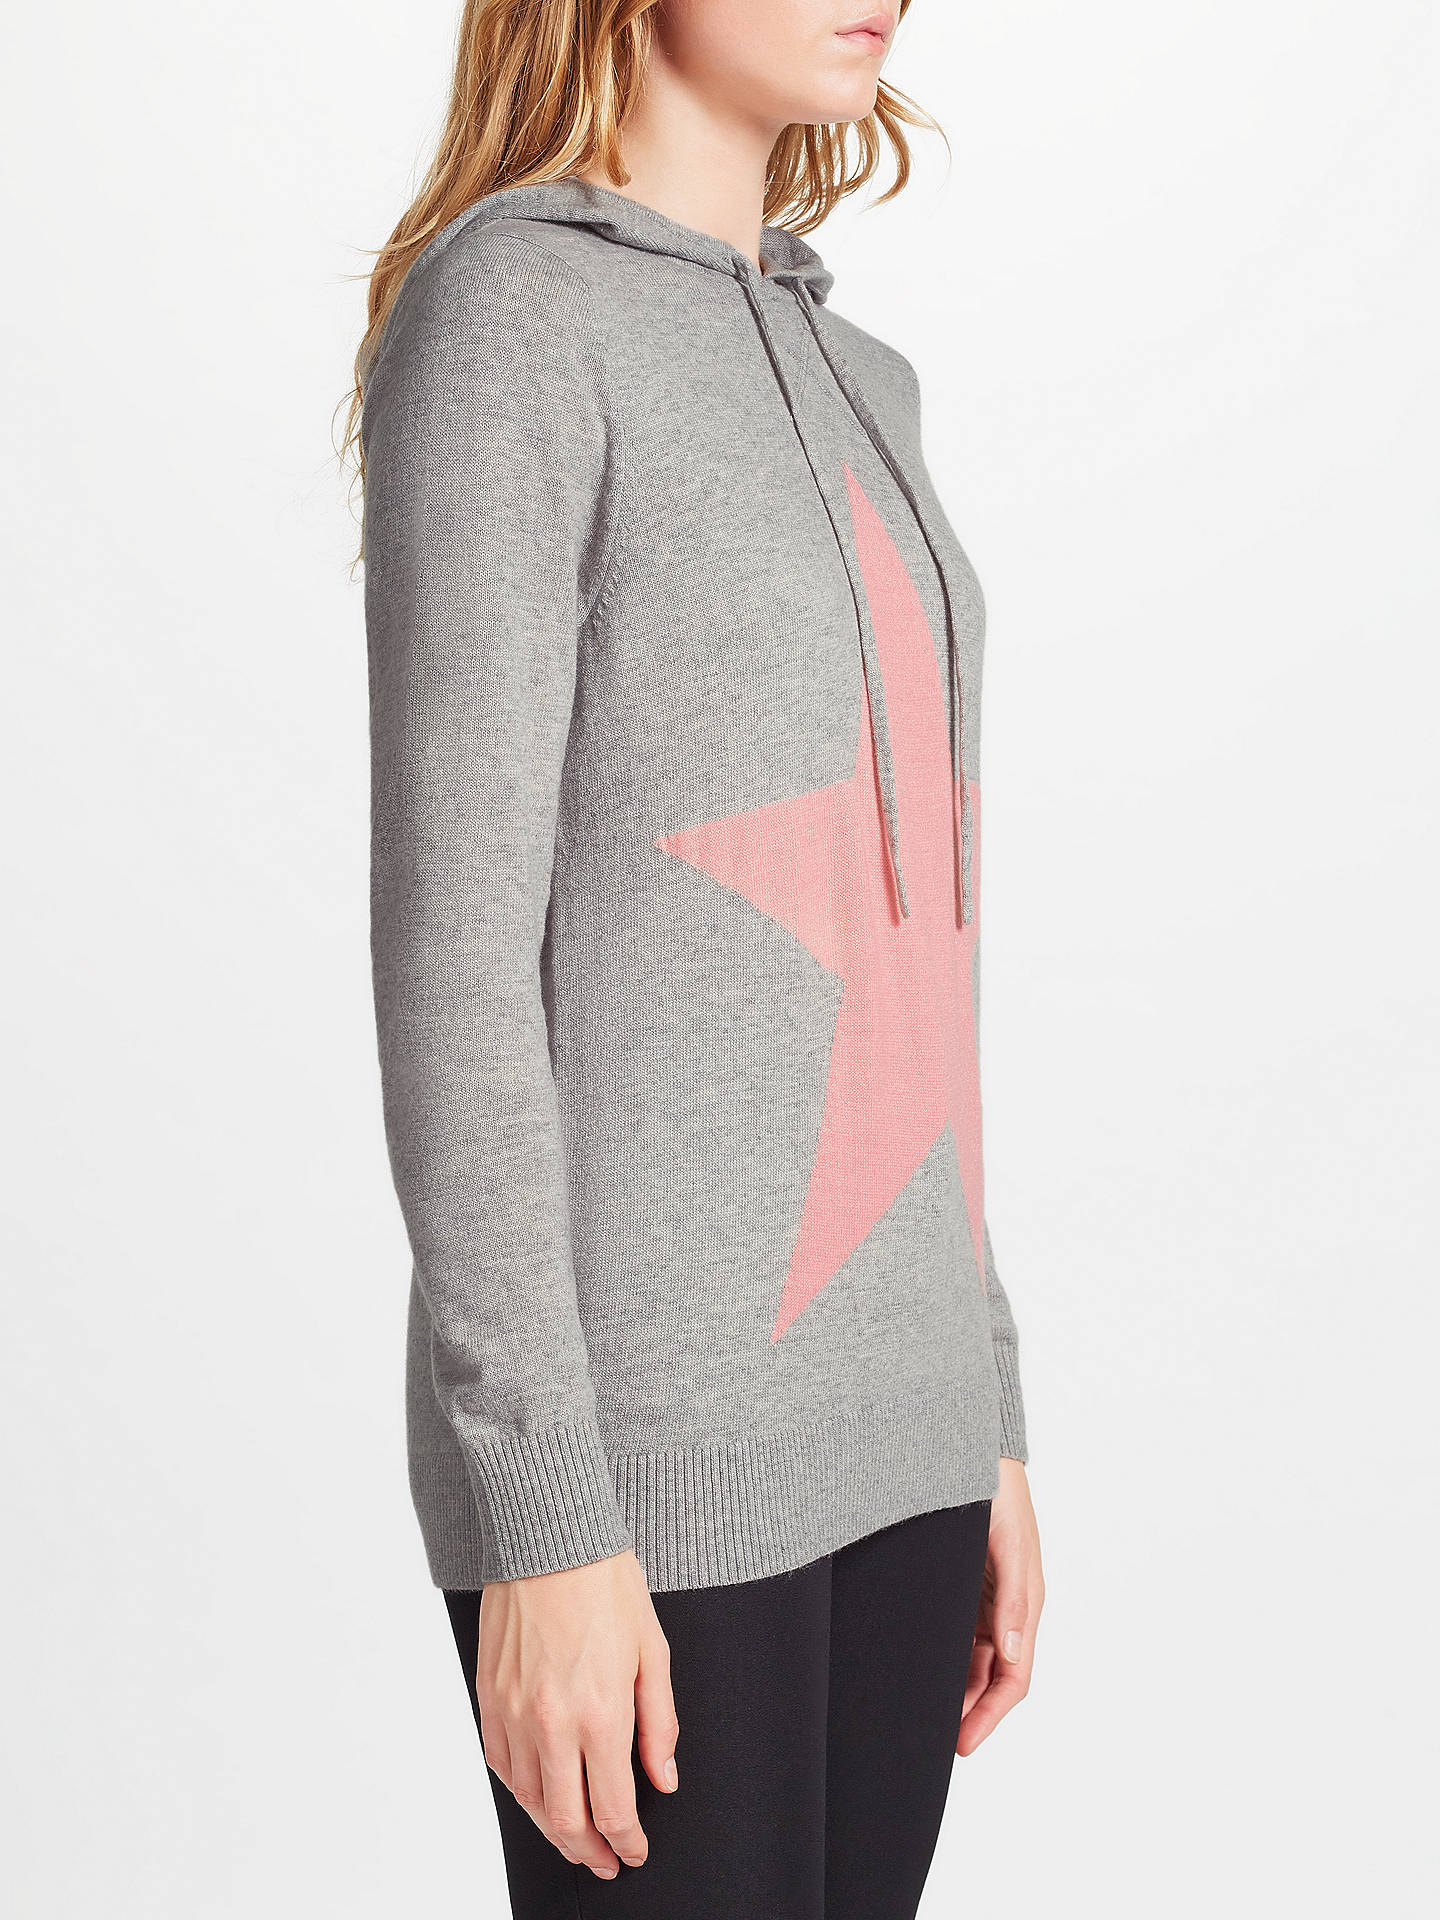 BuyCollection WEEKEND by John Lewis Star Intarsia Hoodie, Grey, 8 Online at johnlewis.com